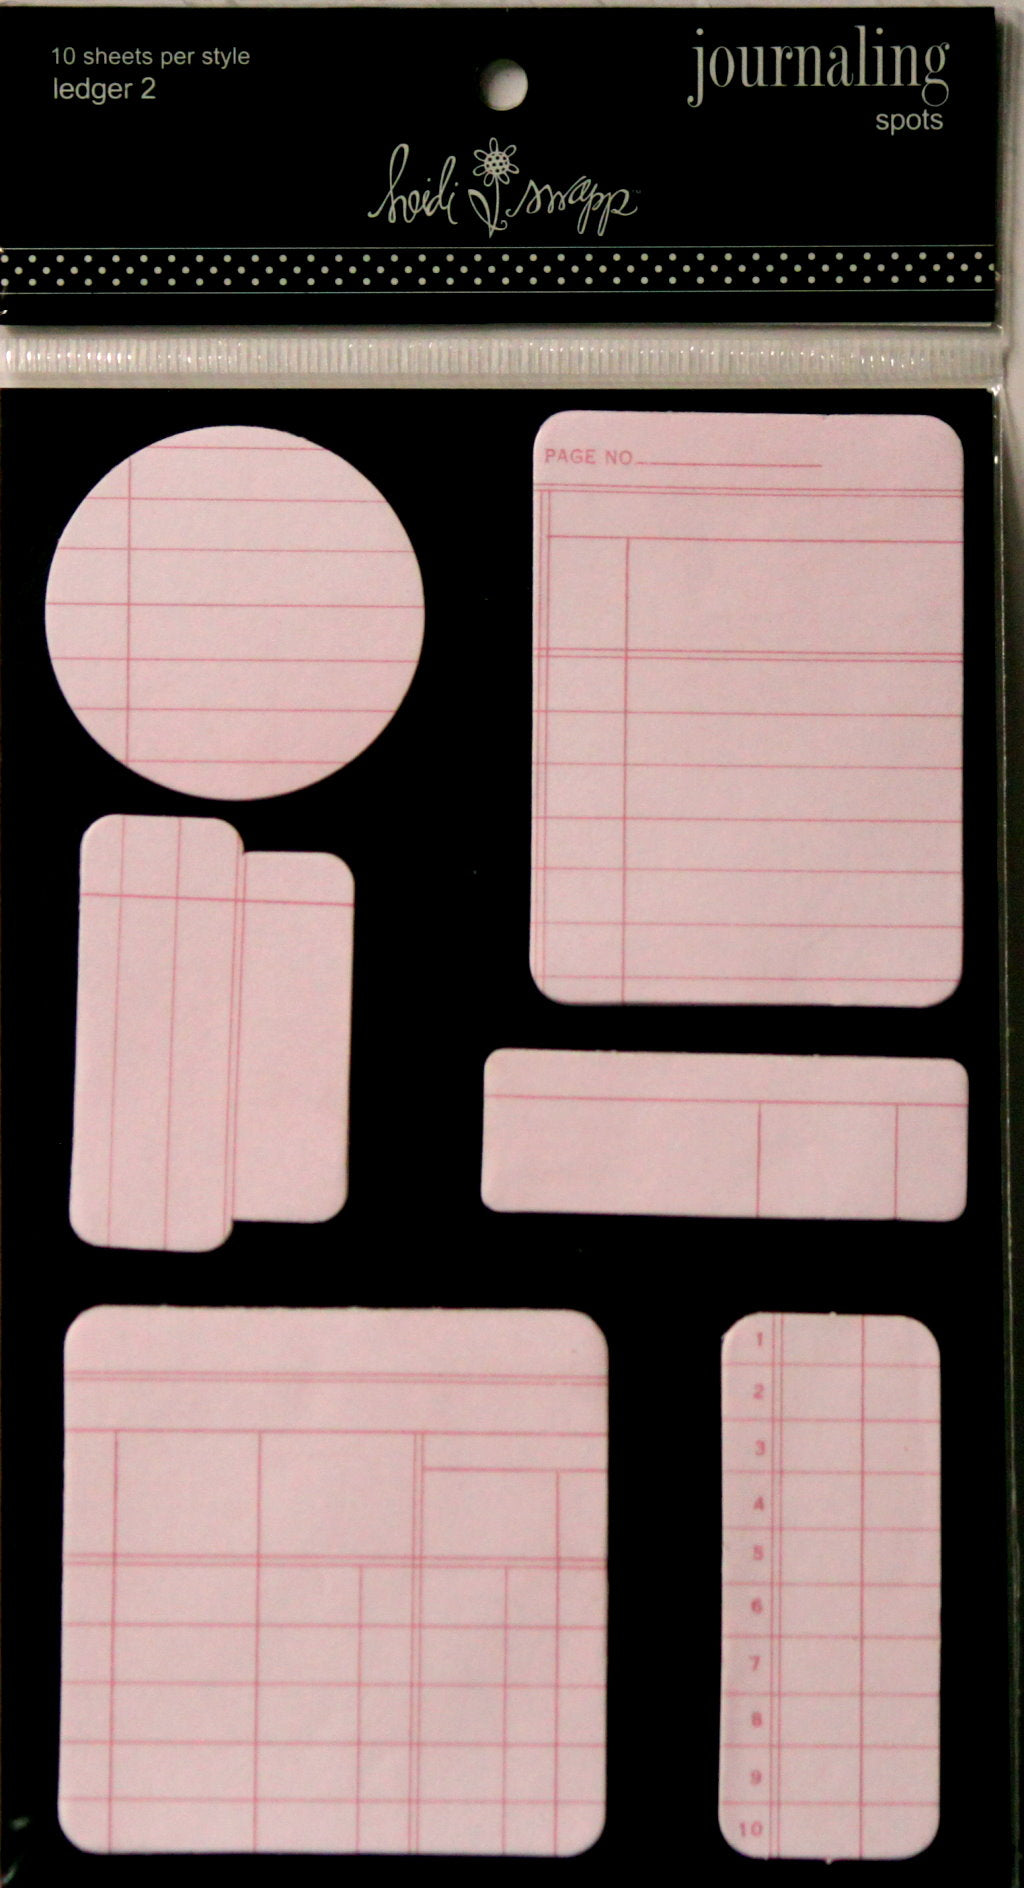 Heidi Swapp Ledger 2 Journaling Spots